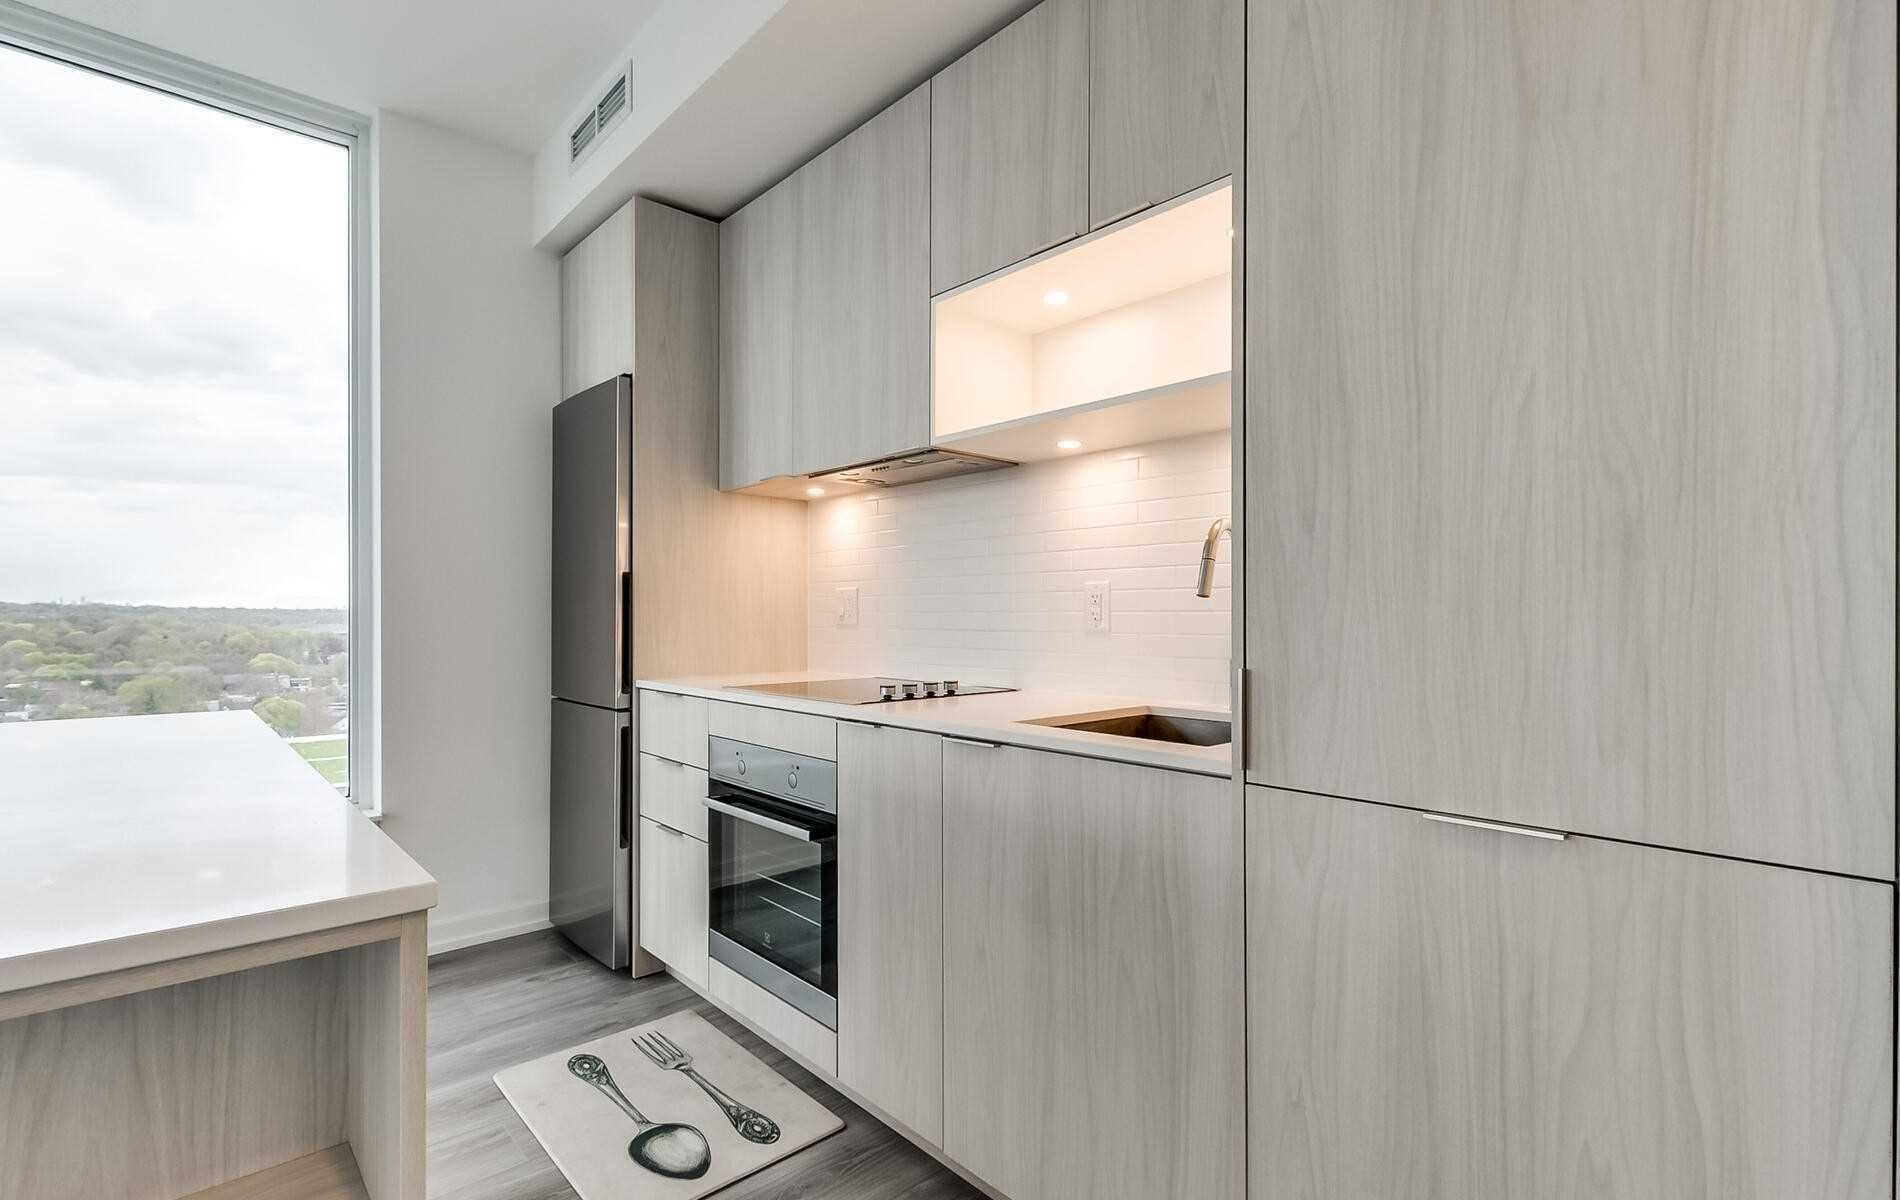 20 Tubman Ave, unit 1903 for sale in Toronto - image #2